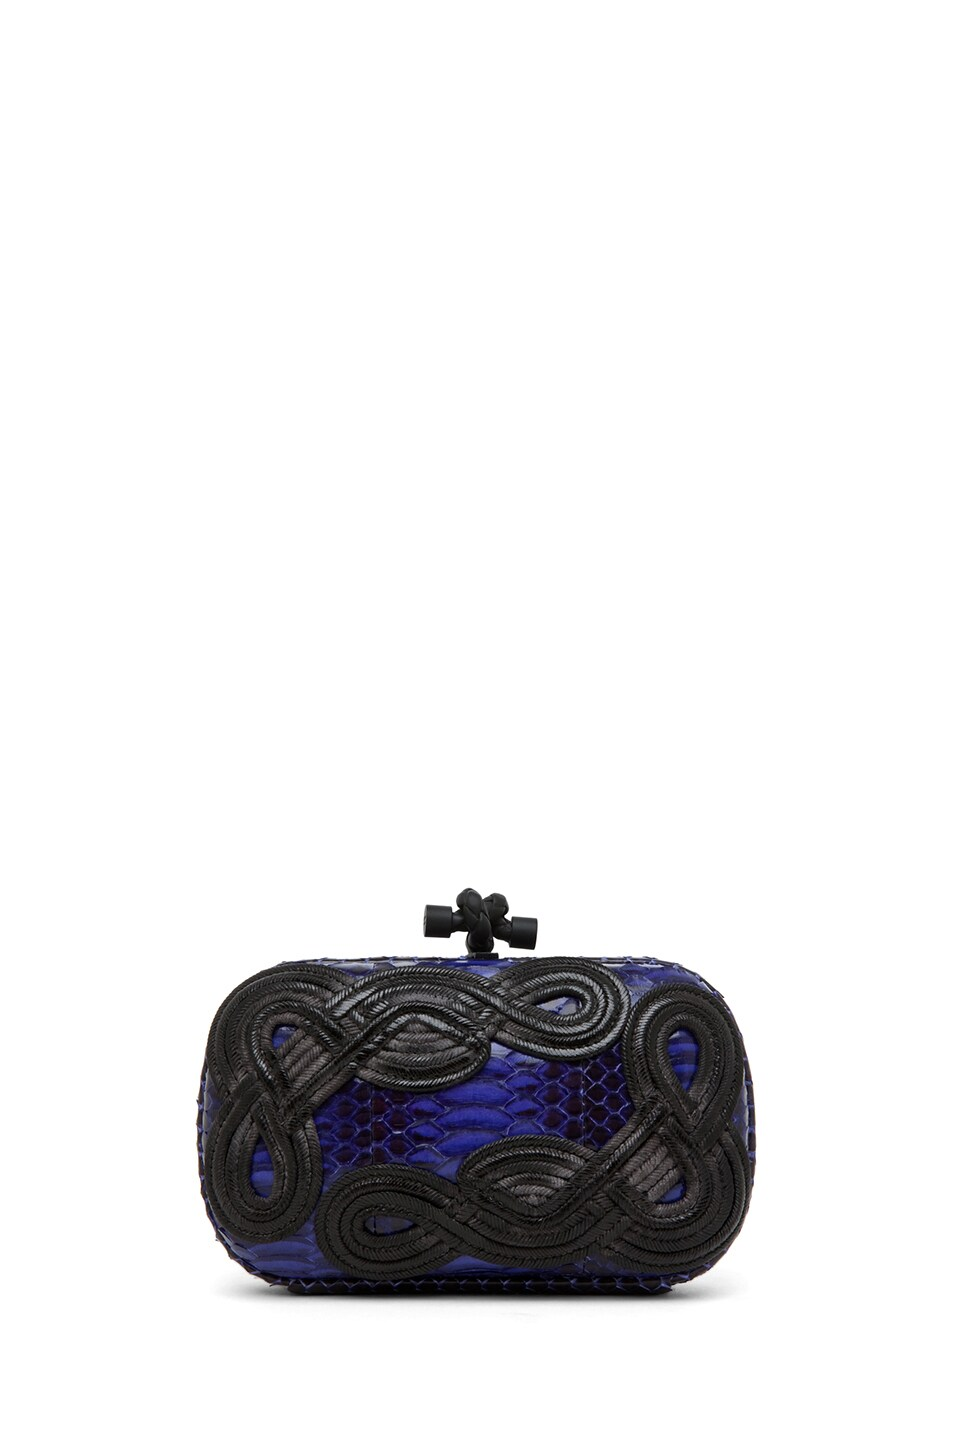 Image 1 of Bottega Veneta Knot Snakeskin Passamaneria Clutch in Purple